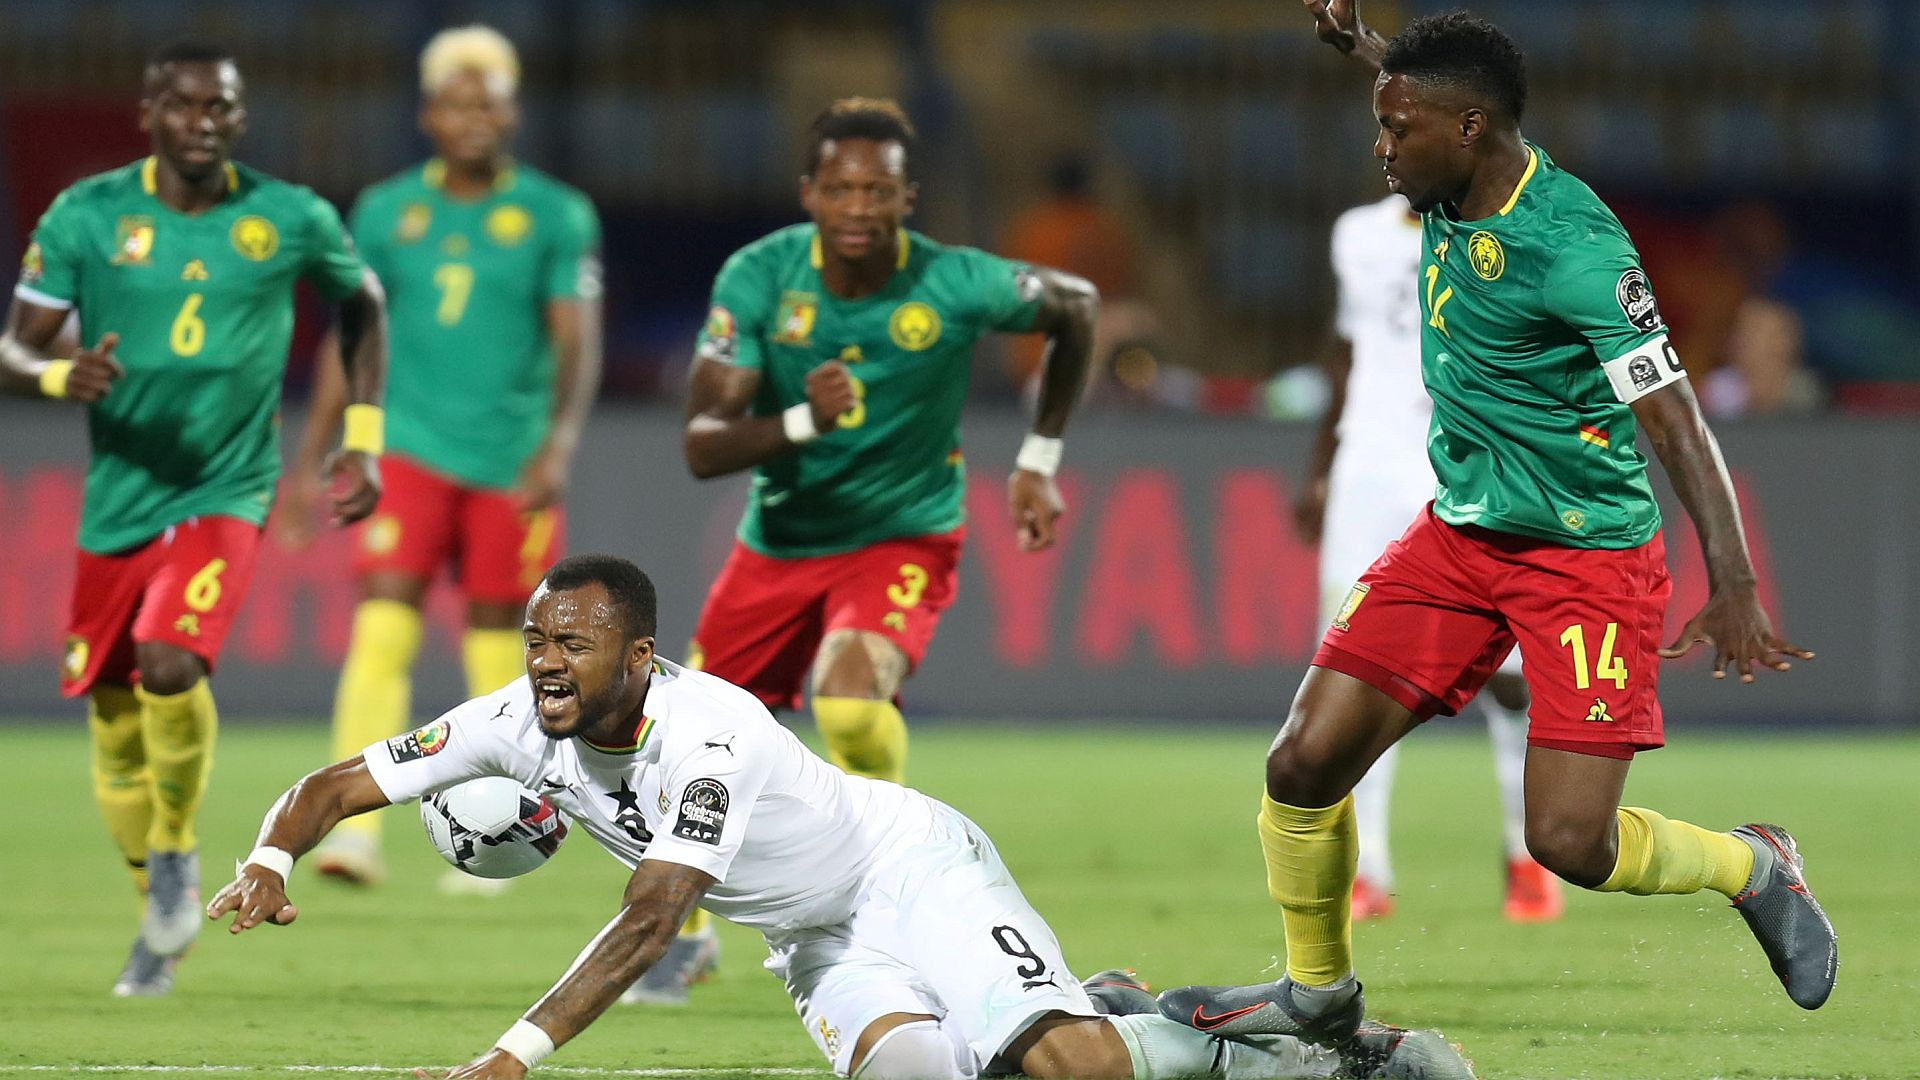 Afcon qualification: Cameroon held by Cape Verde at home